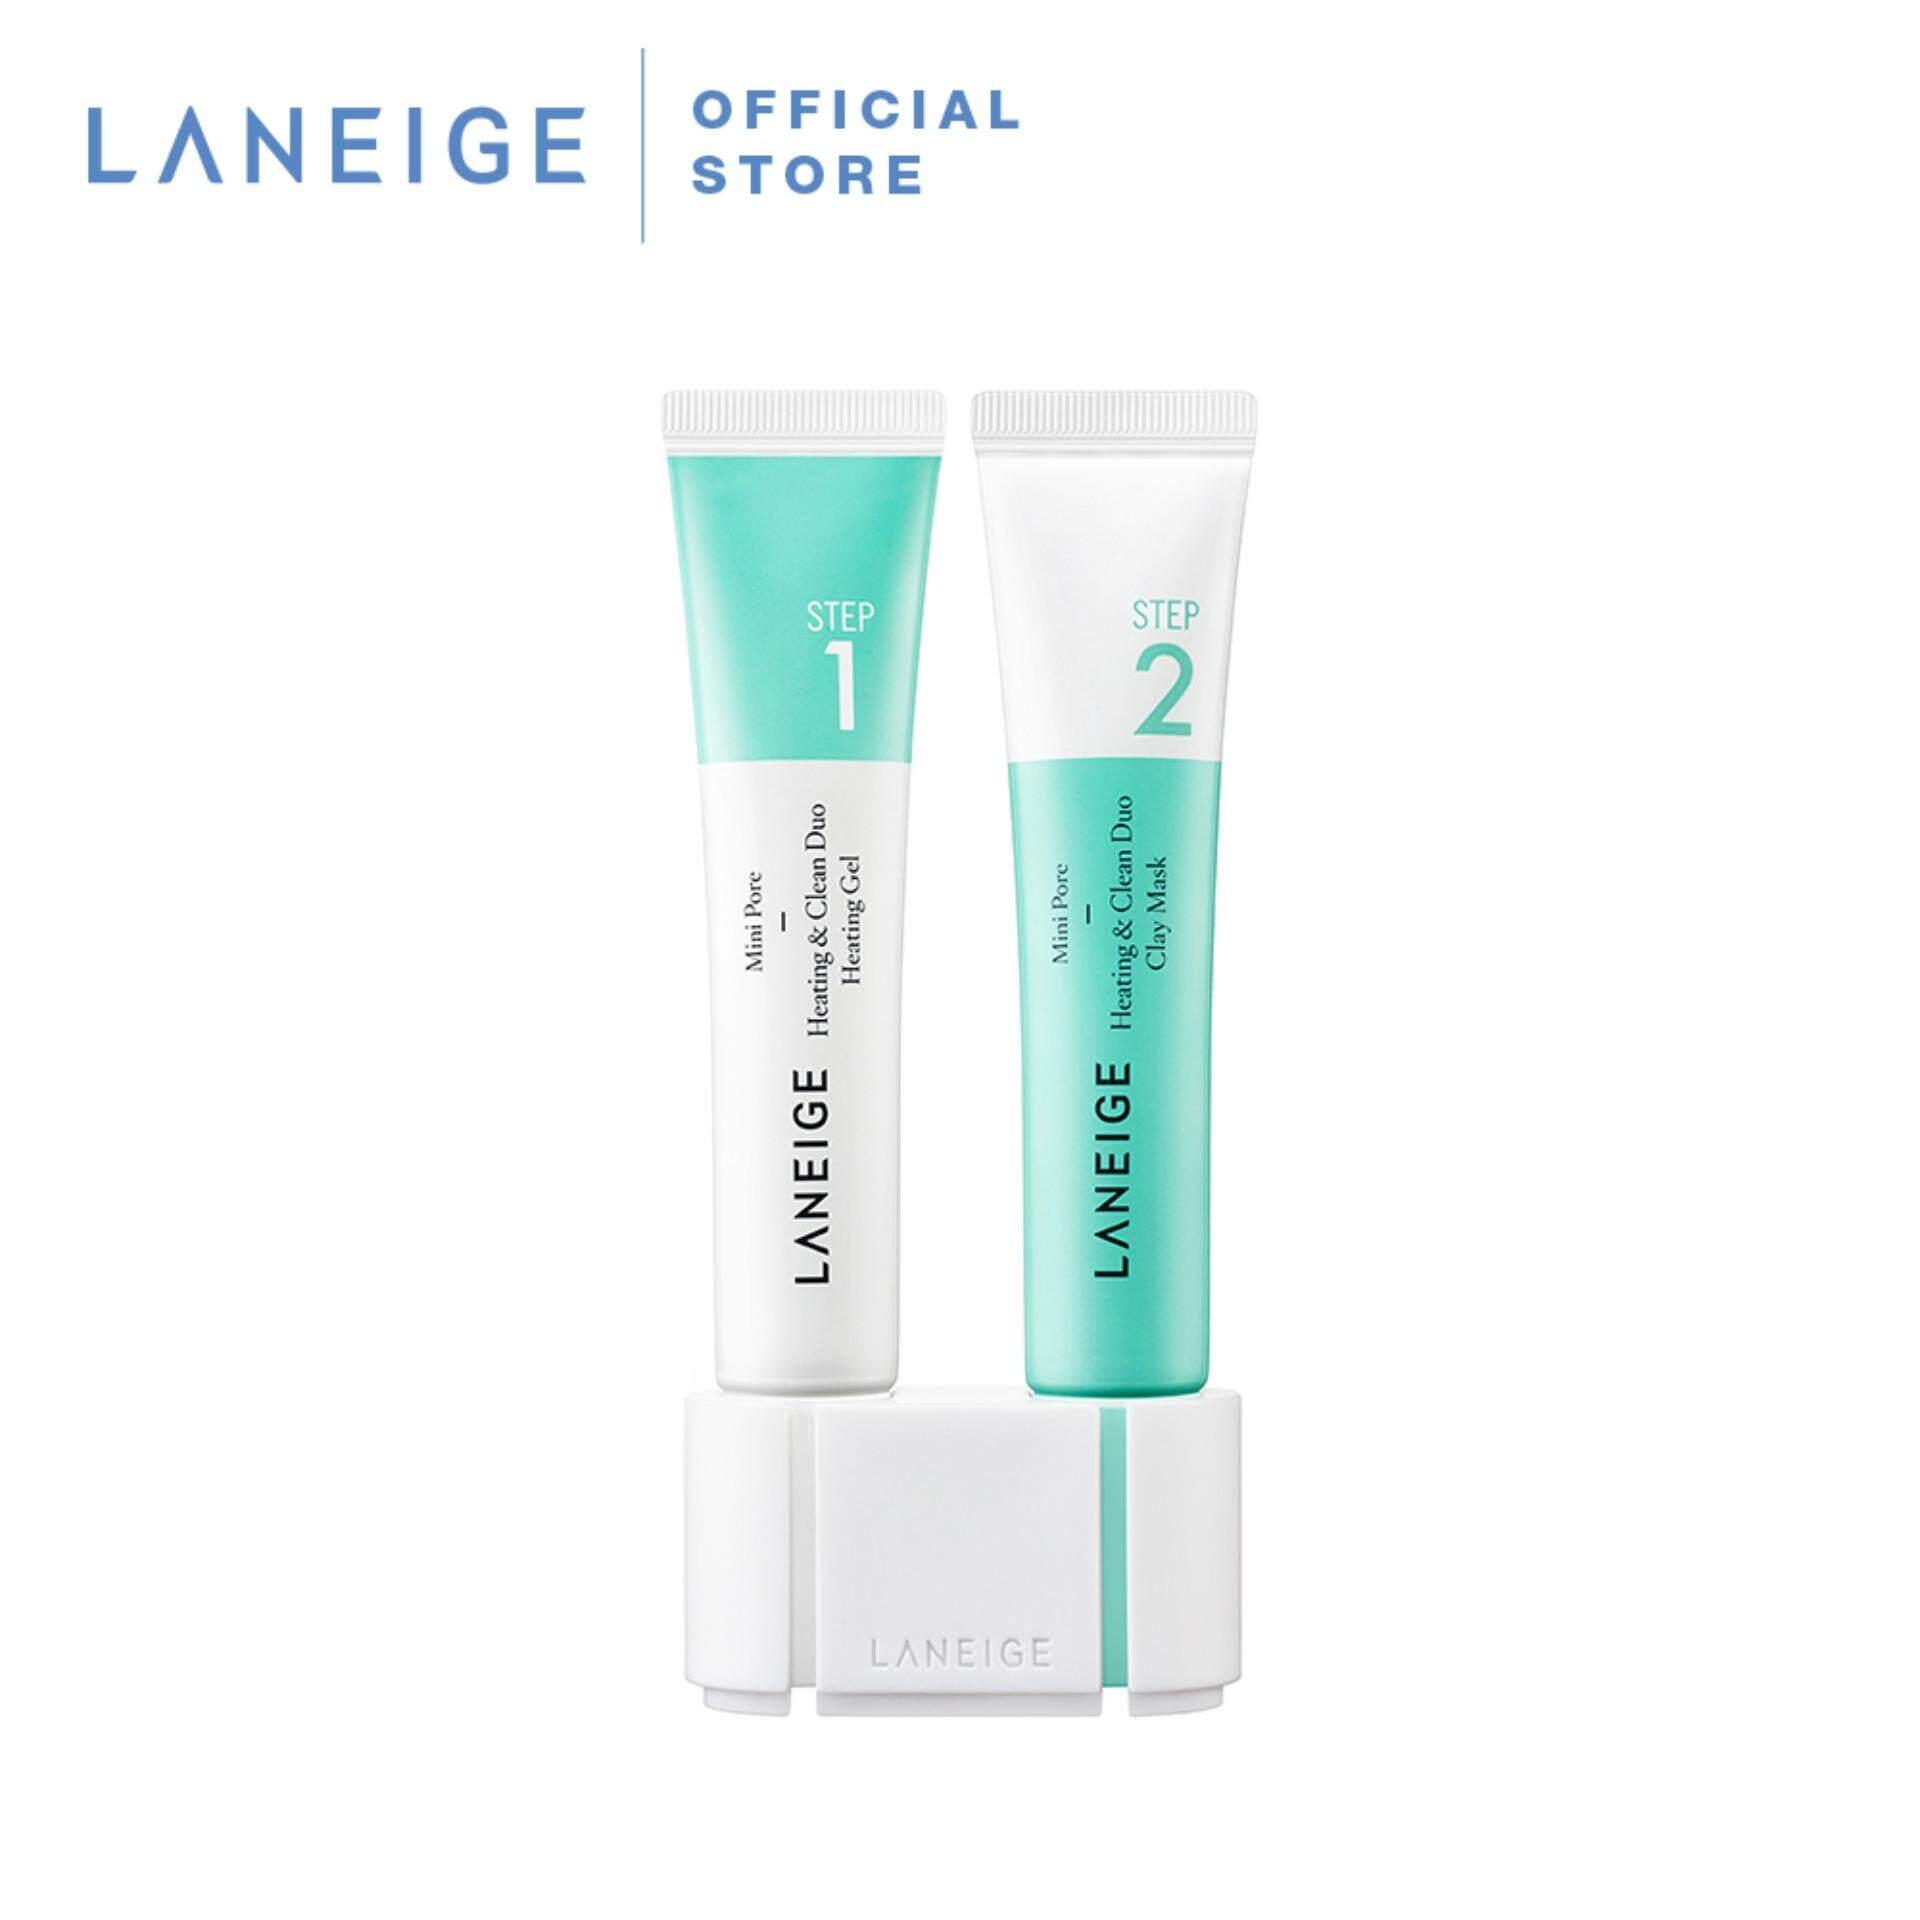 Laneige Mini Pore Heating & Clean Duo 15ml Each By Laneige Malaysia.